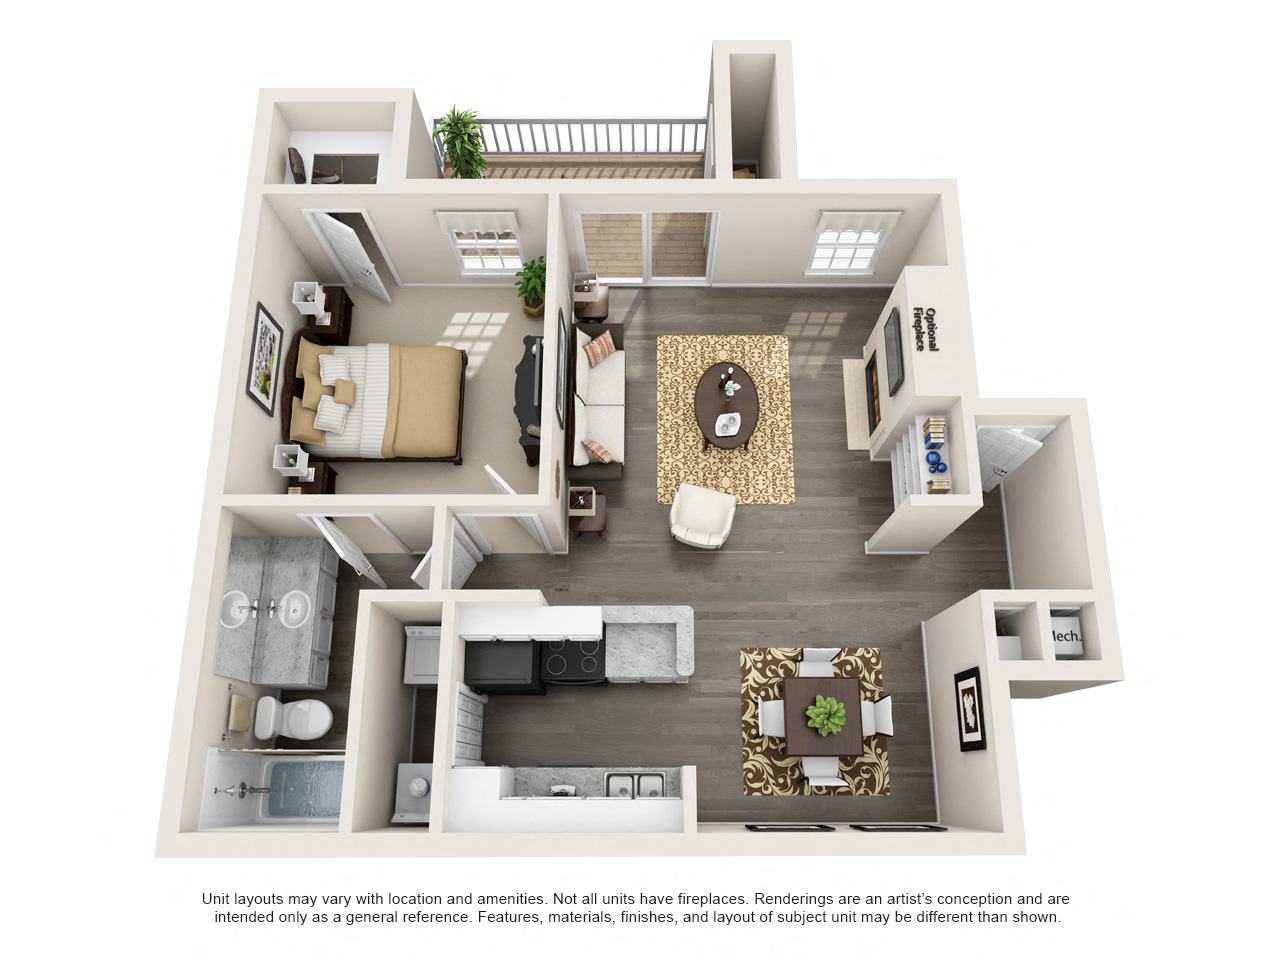 1 and 2 Bedroom Apartments for Rent   The Arbors at Brookfield The Arbors at Brookfield Oaks 1 bd